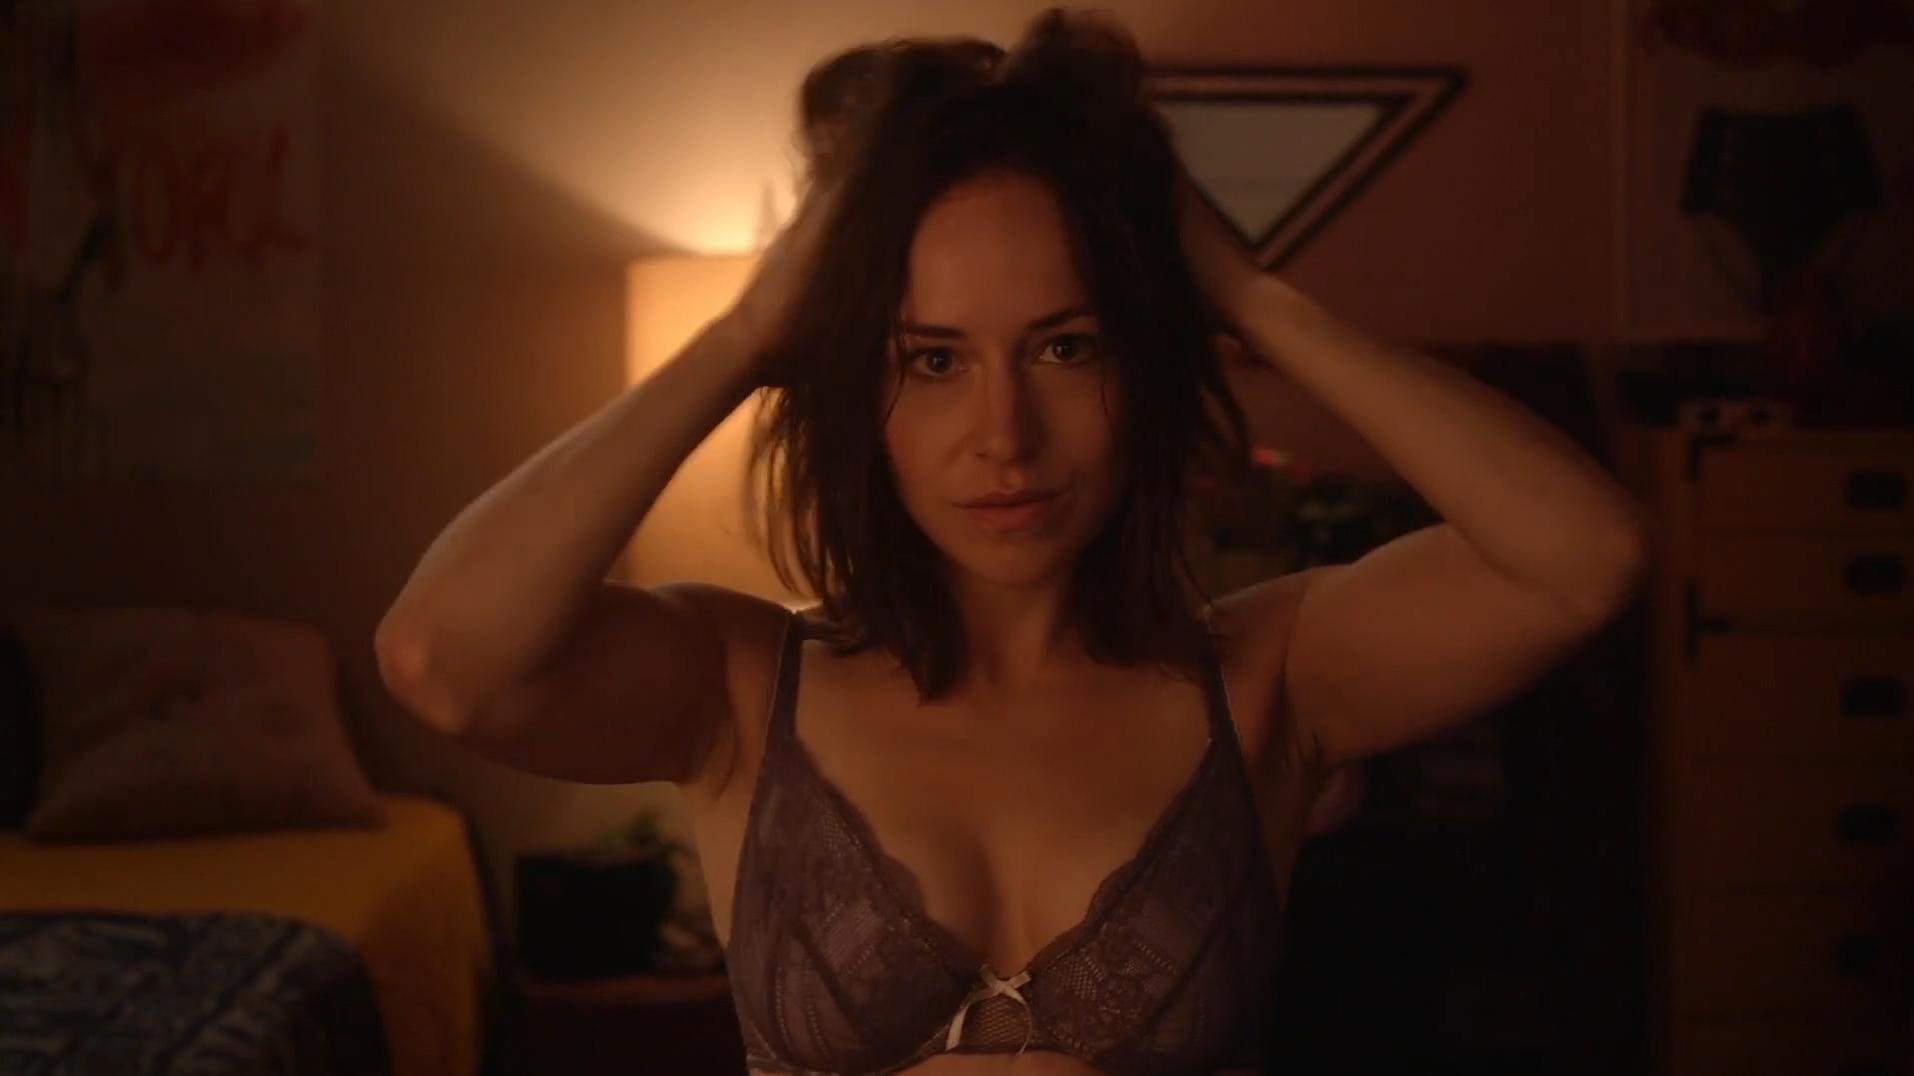 Sarah Goldberg sexy - Hindsight s01e04 (2015)